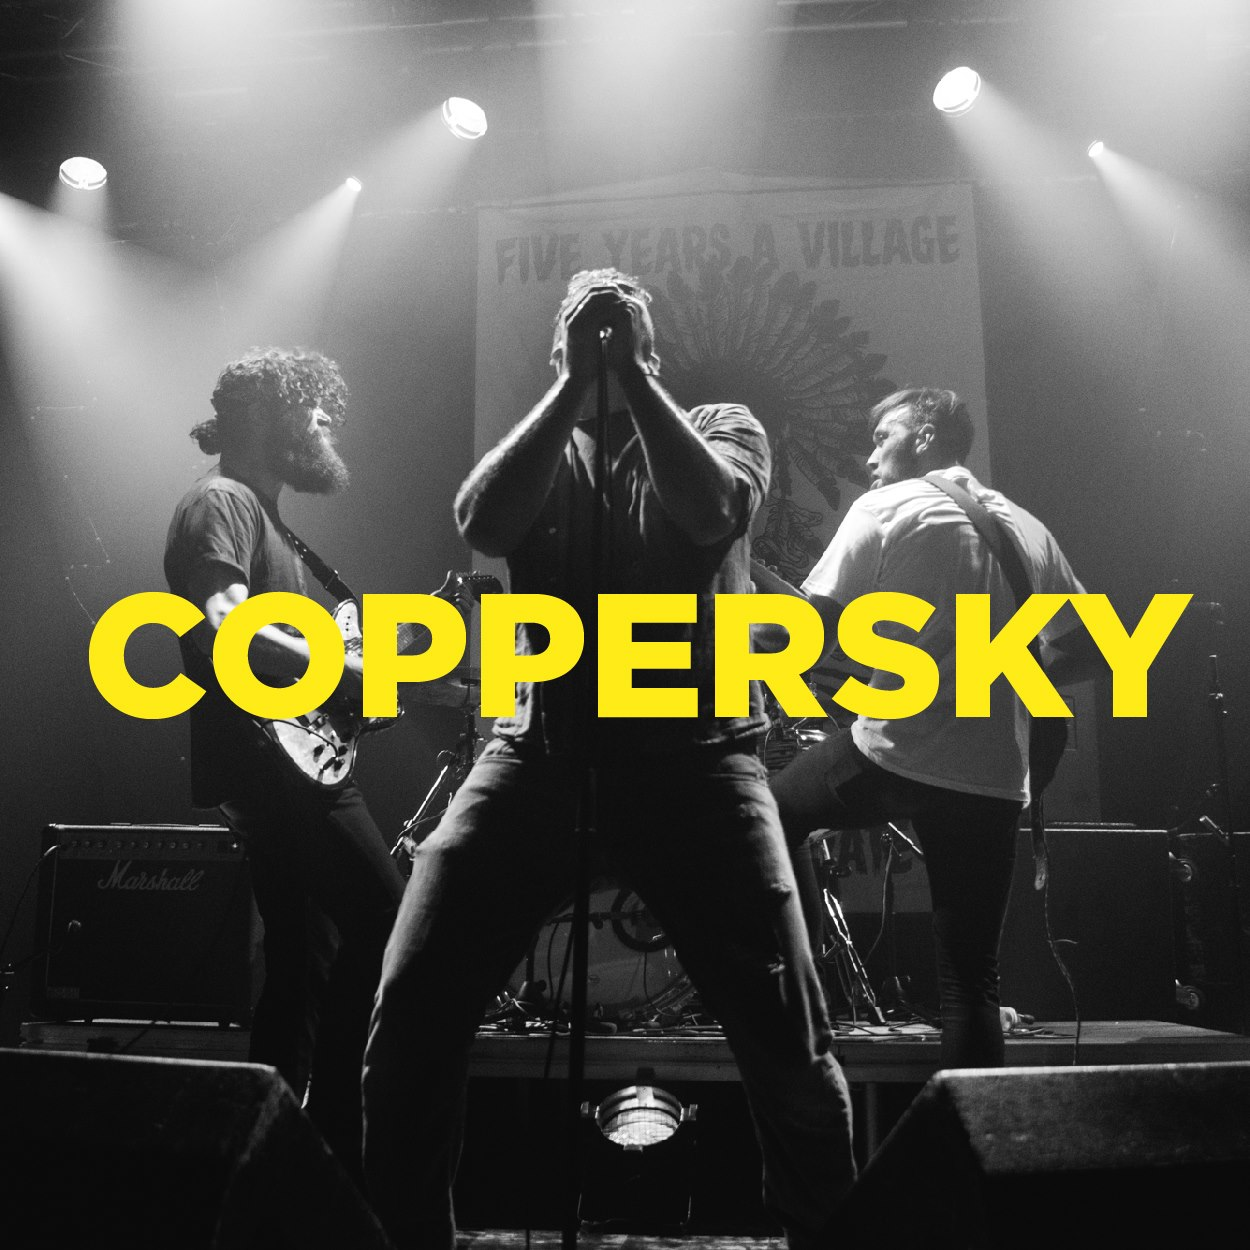 Coppersky